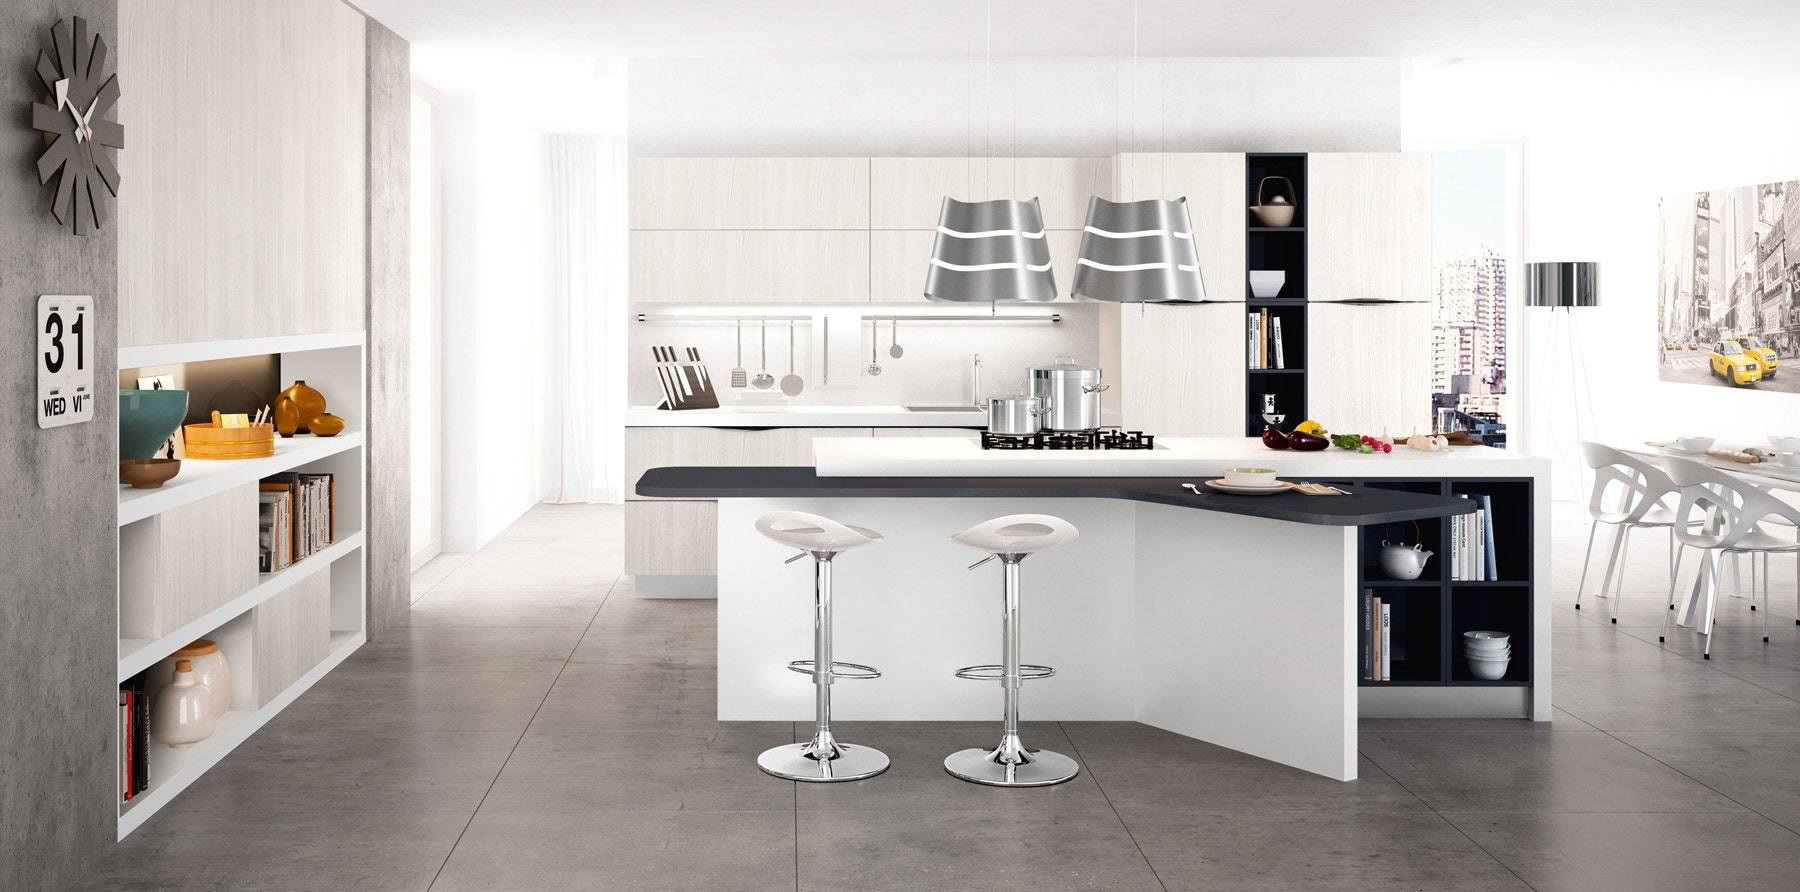 35 Resourceful Modern Kitchen Stools That Are Sparkling With Elegance Look Fabulous Decoratorist